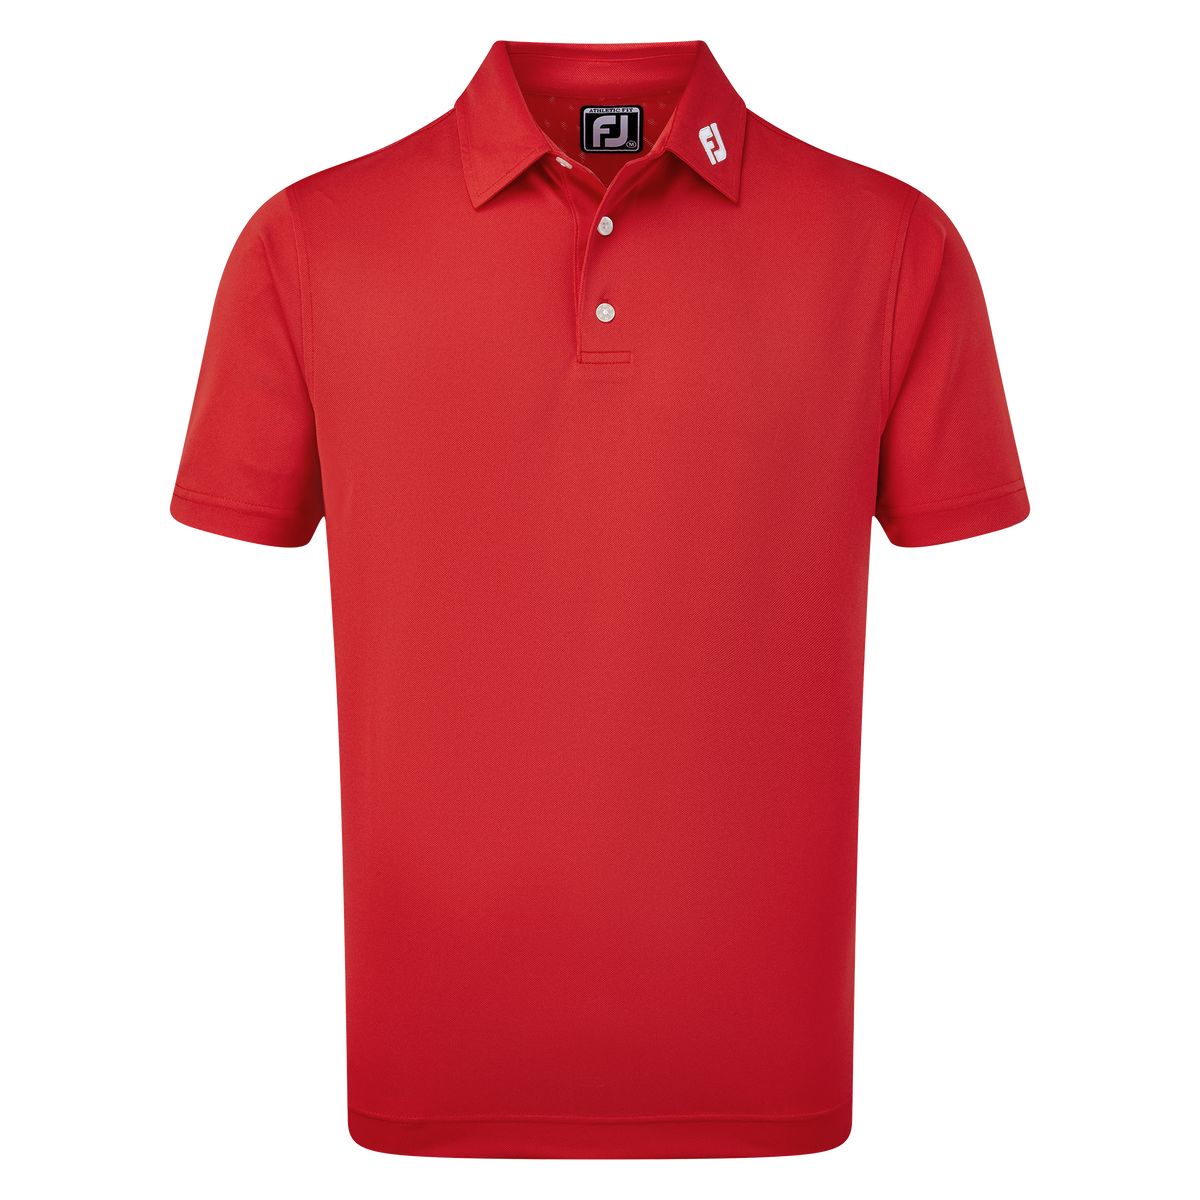 ProDry Performance Stretch Pique Solid Shirt